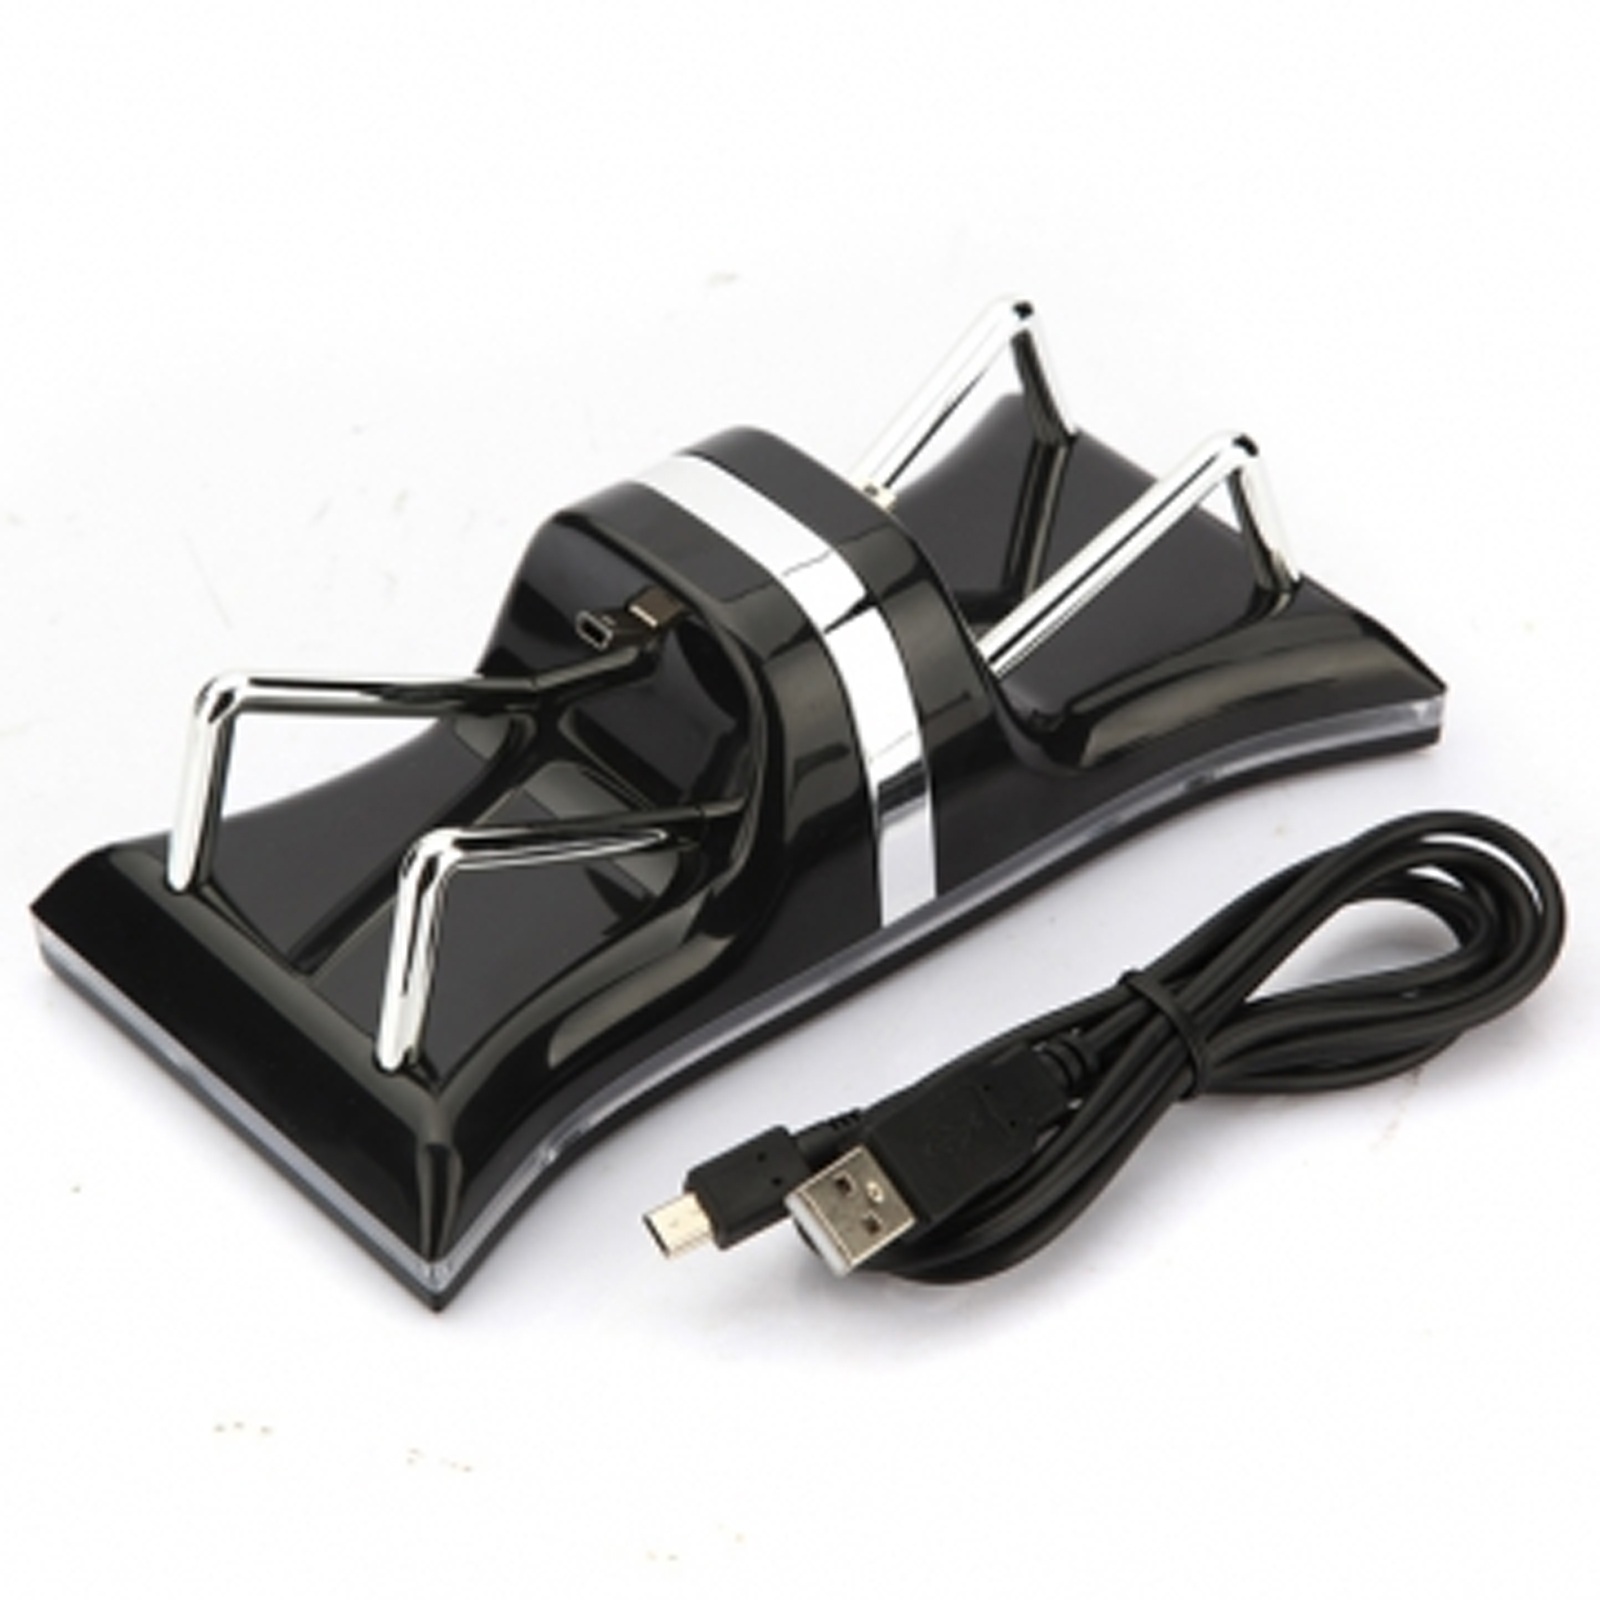 PS3 Dual Charger